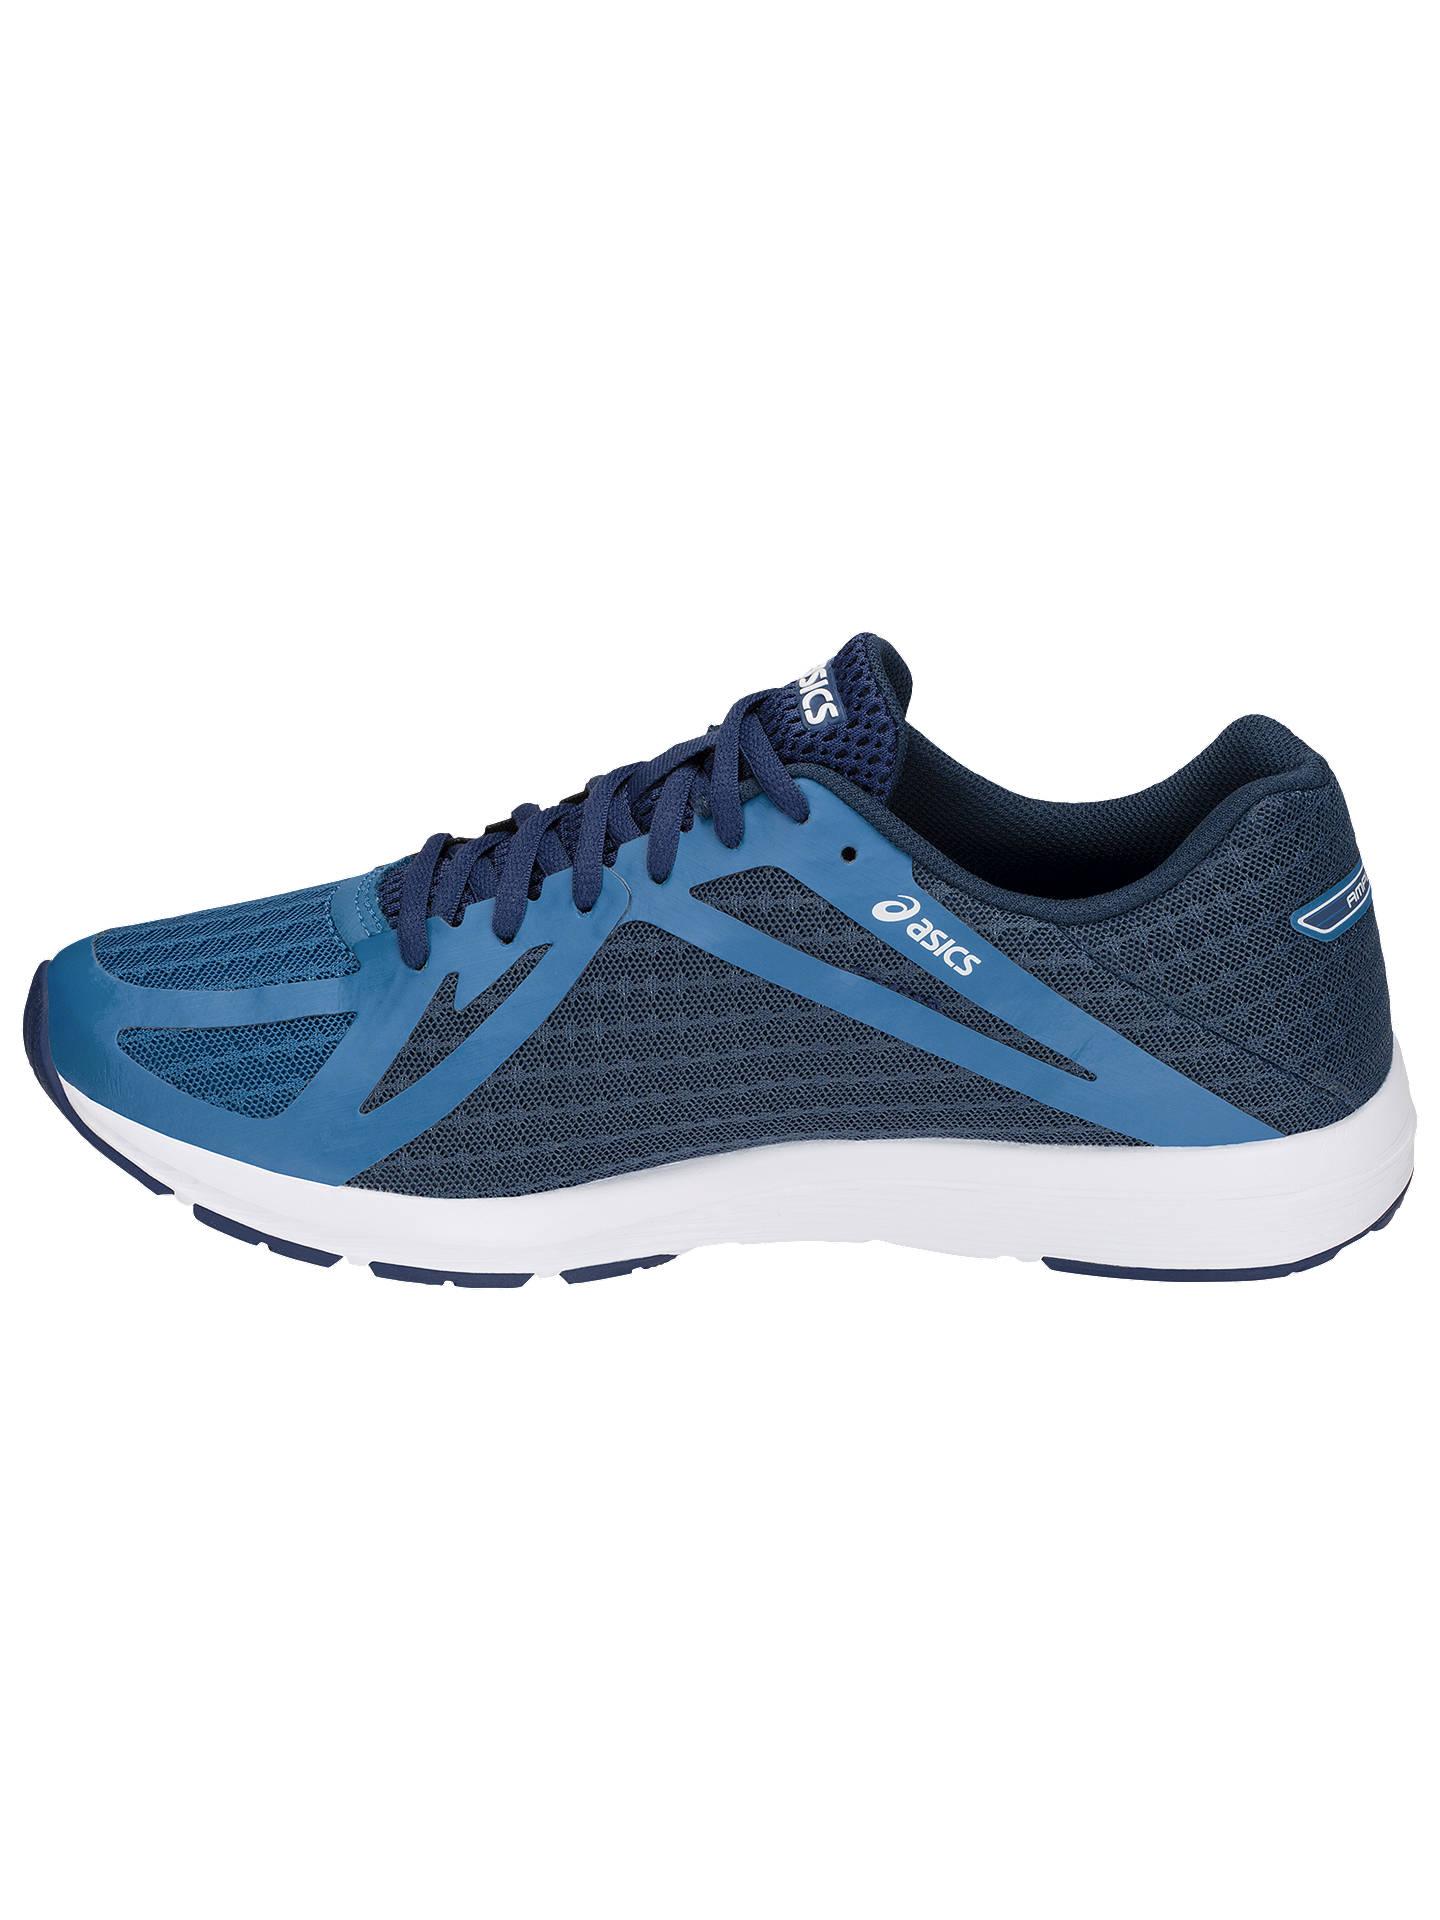 BuyASICS Amplica Men's Running Shoes, Race Blue/Deep Ocean, 7 Online at johnlewis.com